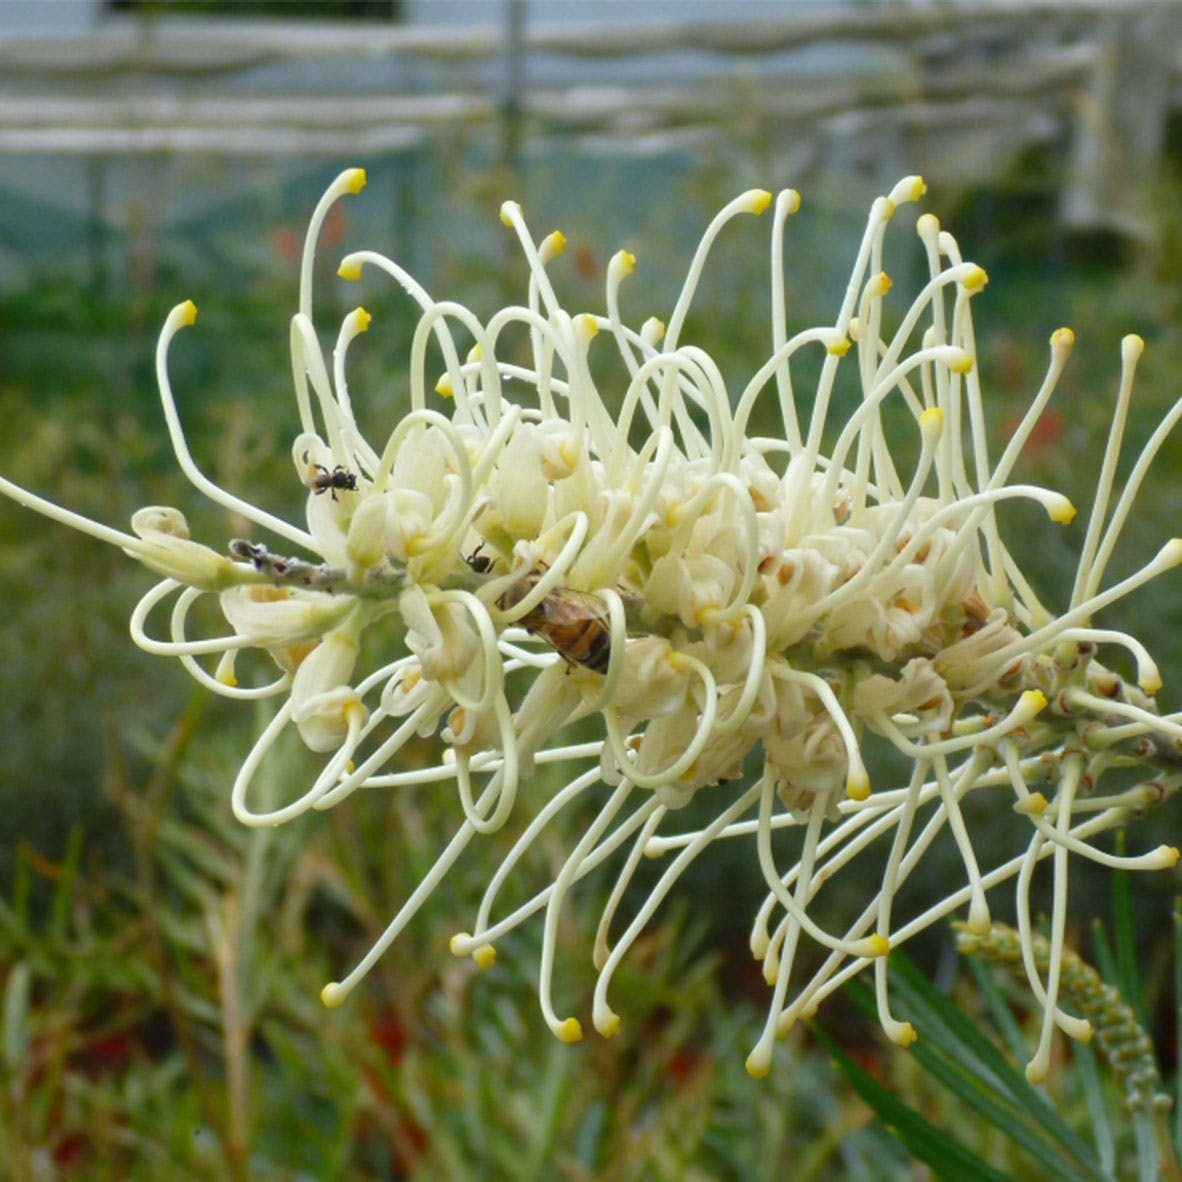 Grevillea moonlight - example of low shrub